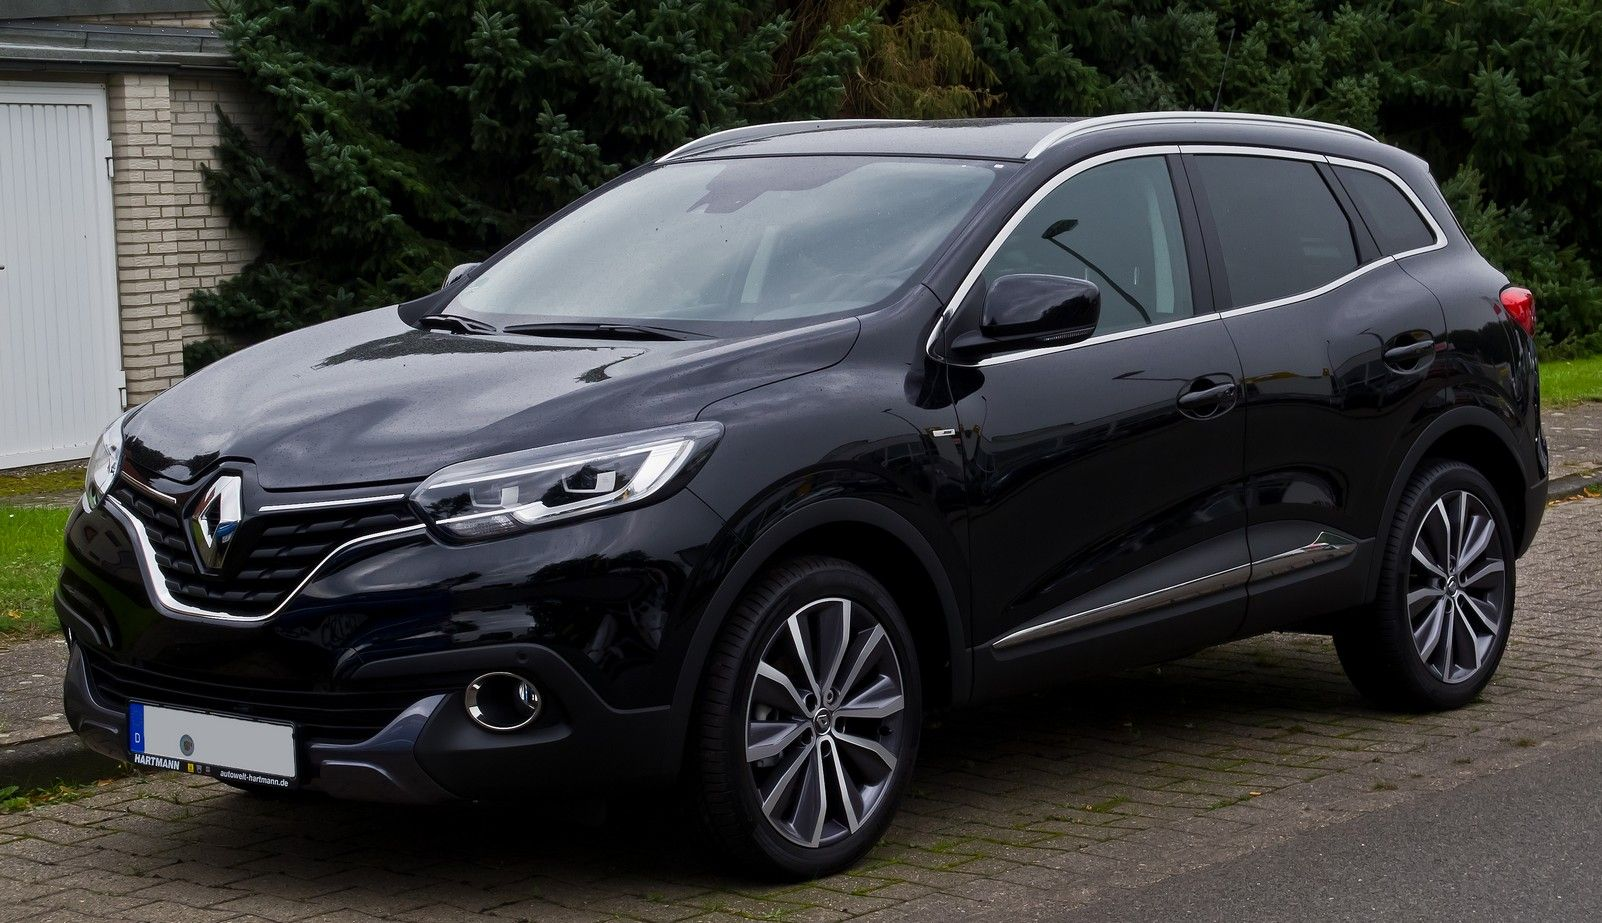 2019 renault kadjar new suv cars and trucks pinterest. Black Bedroom Furniture Sets. Home Design Ideas